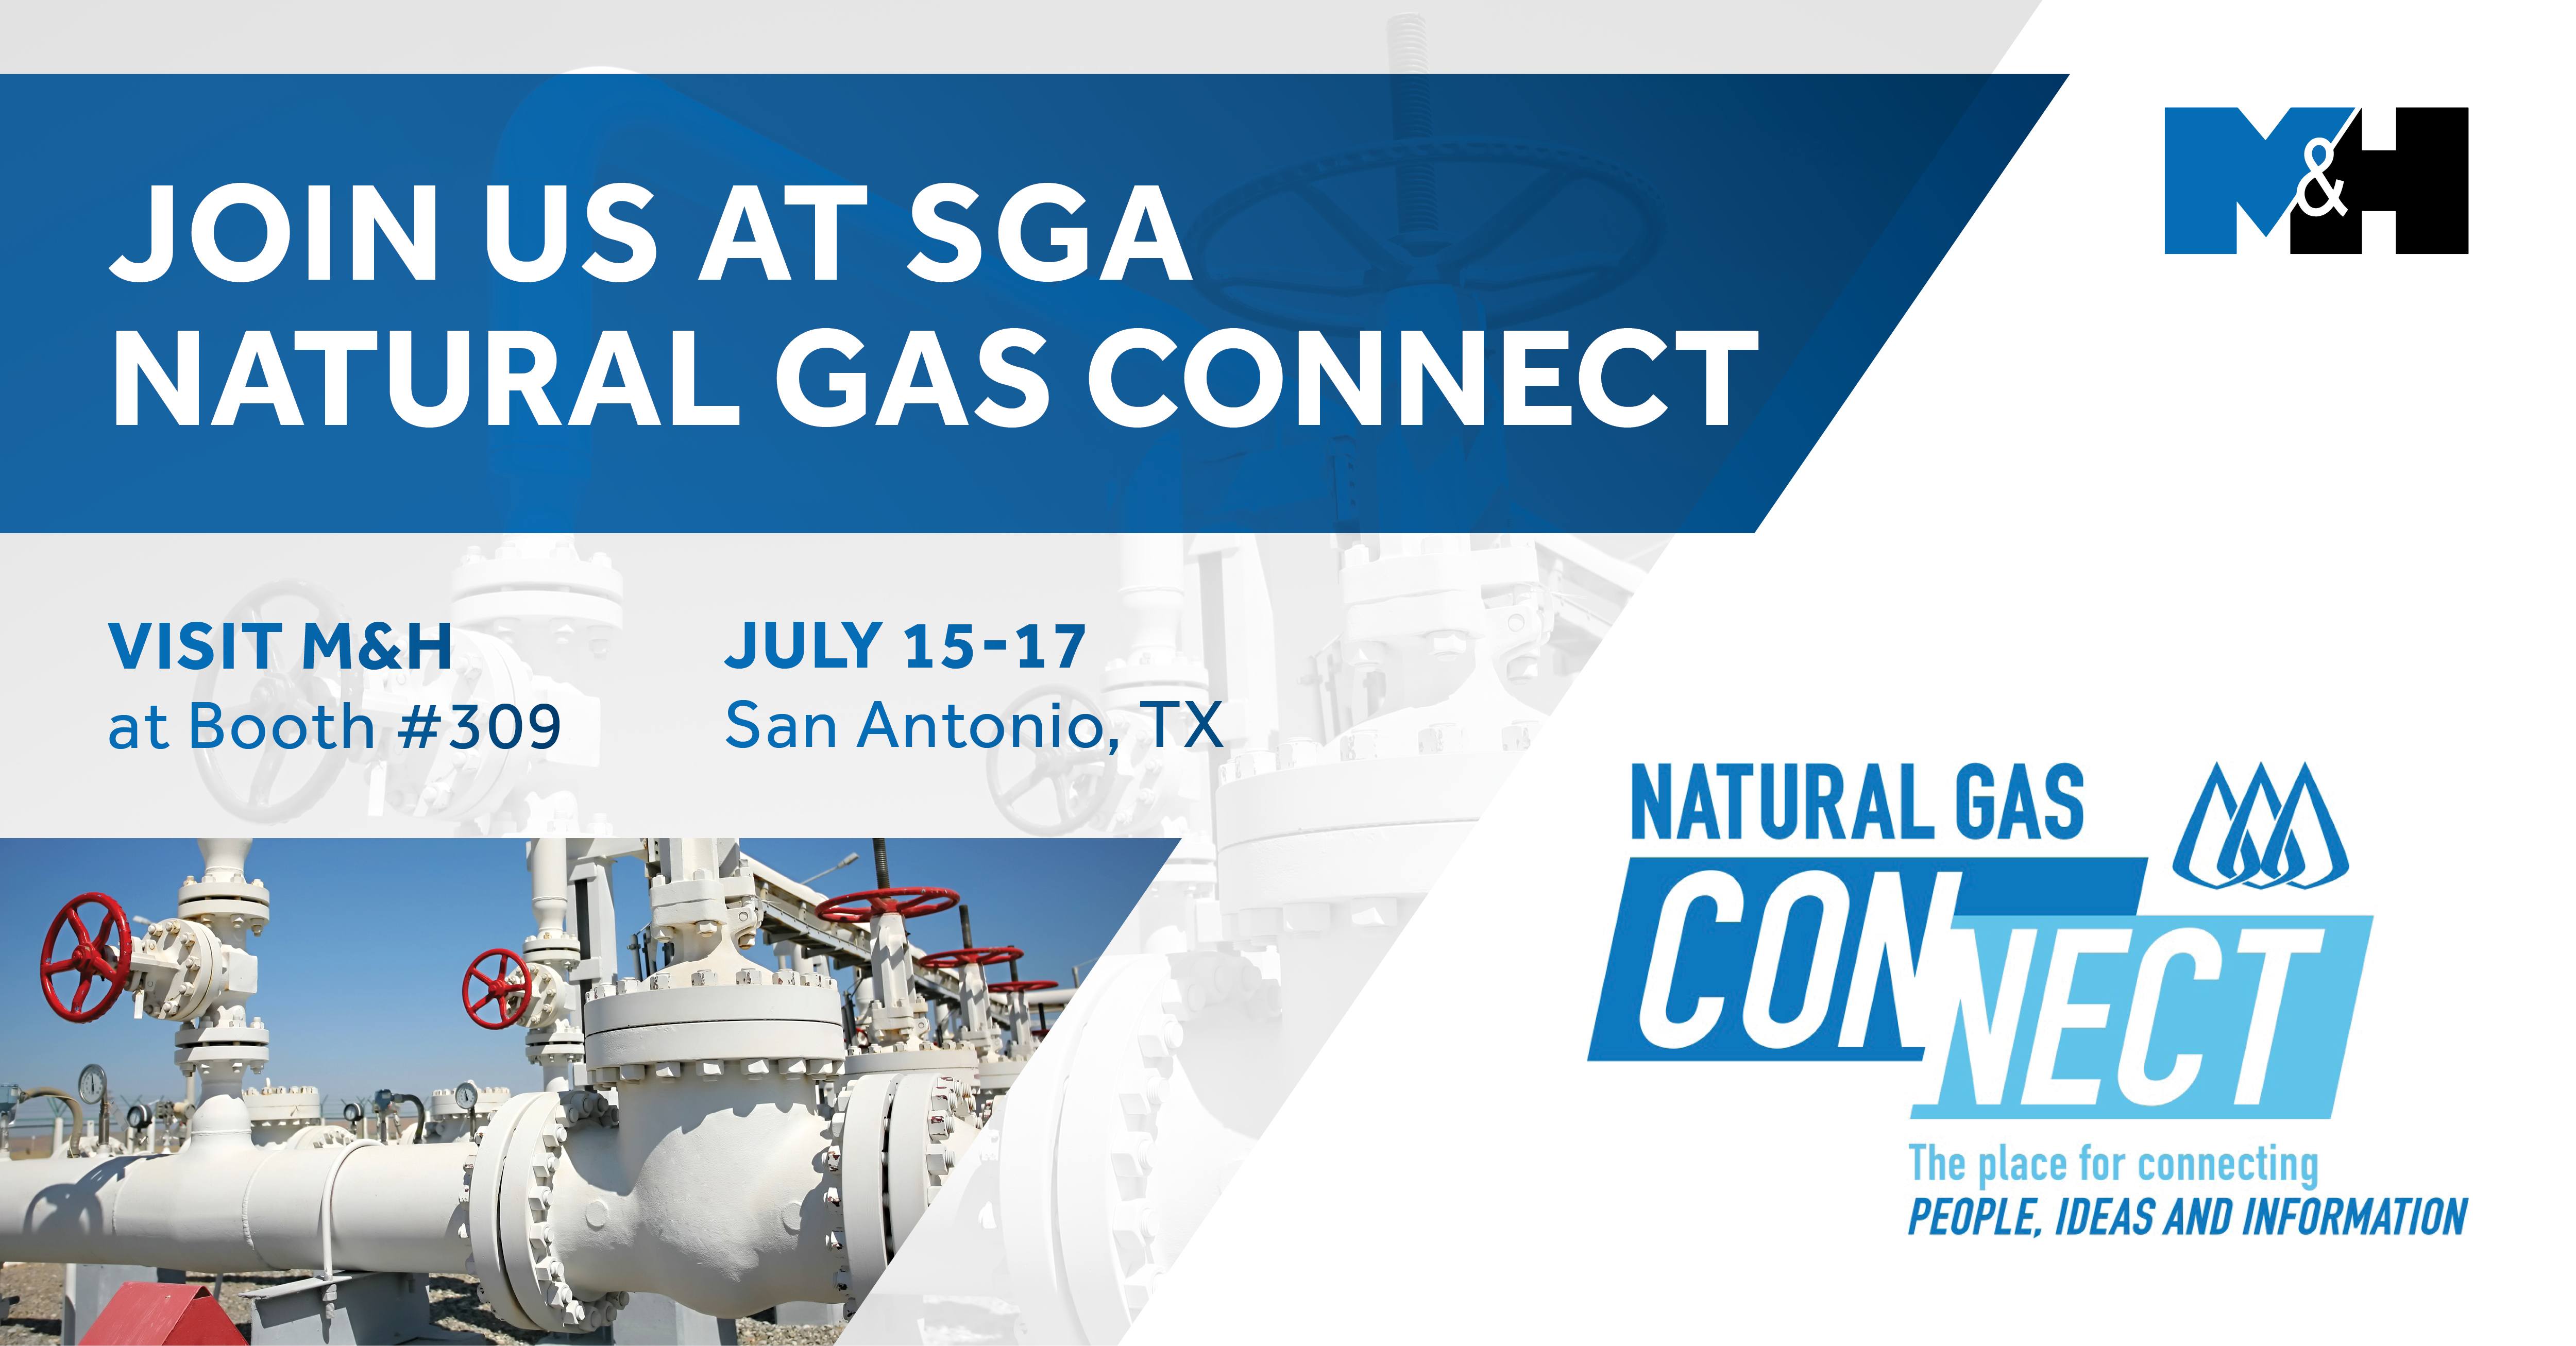 M&H LinkedIN Graphic - SGA Natural Gas Connect - 062019